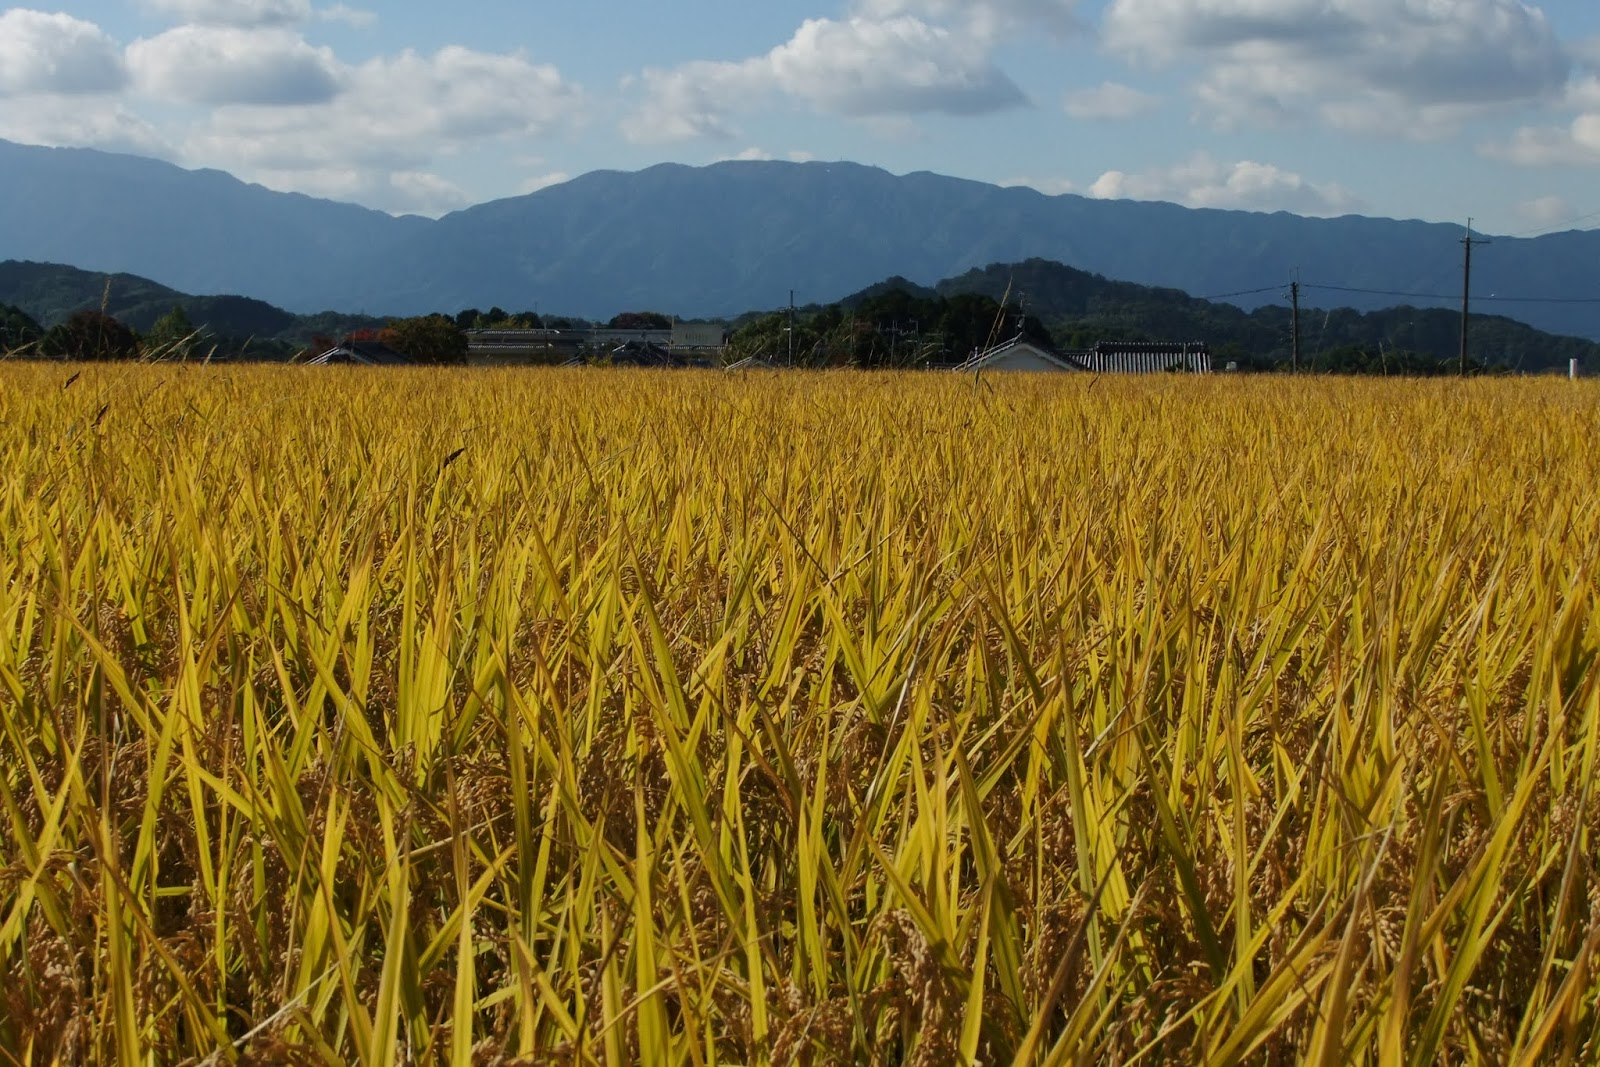 japan-nara-asukavillage-ricefield 奈良飛鳥村の稲穂